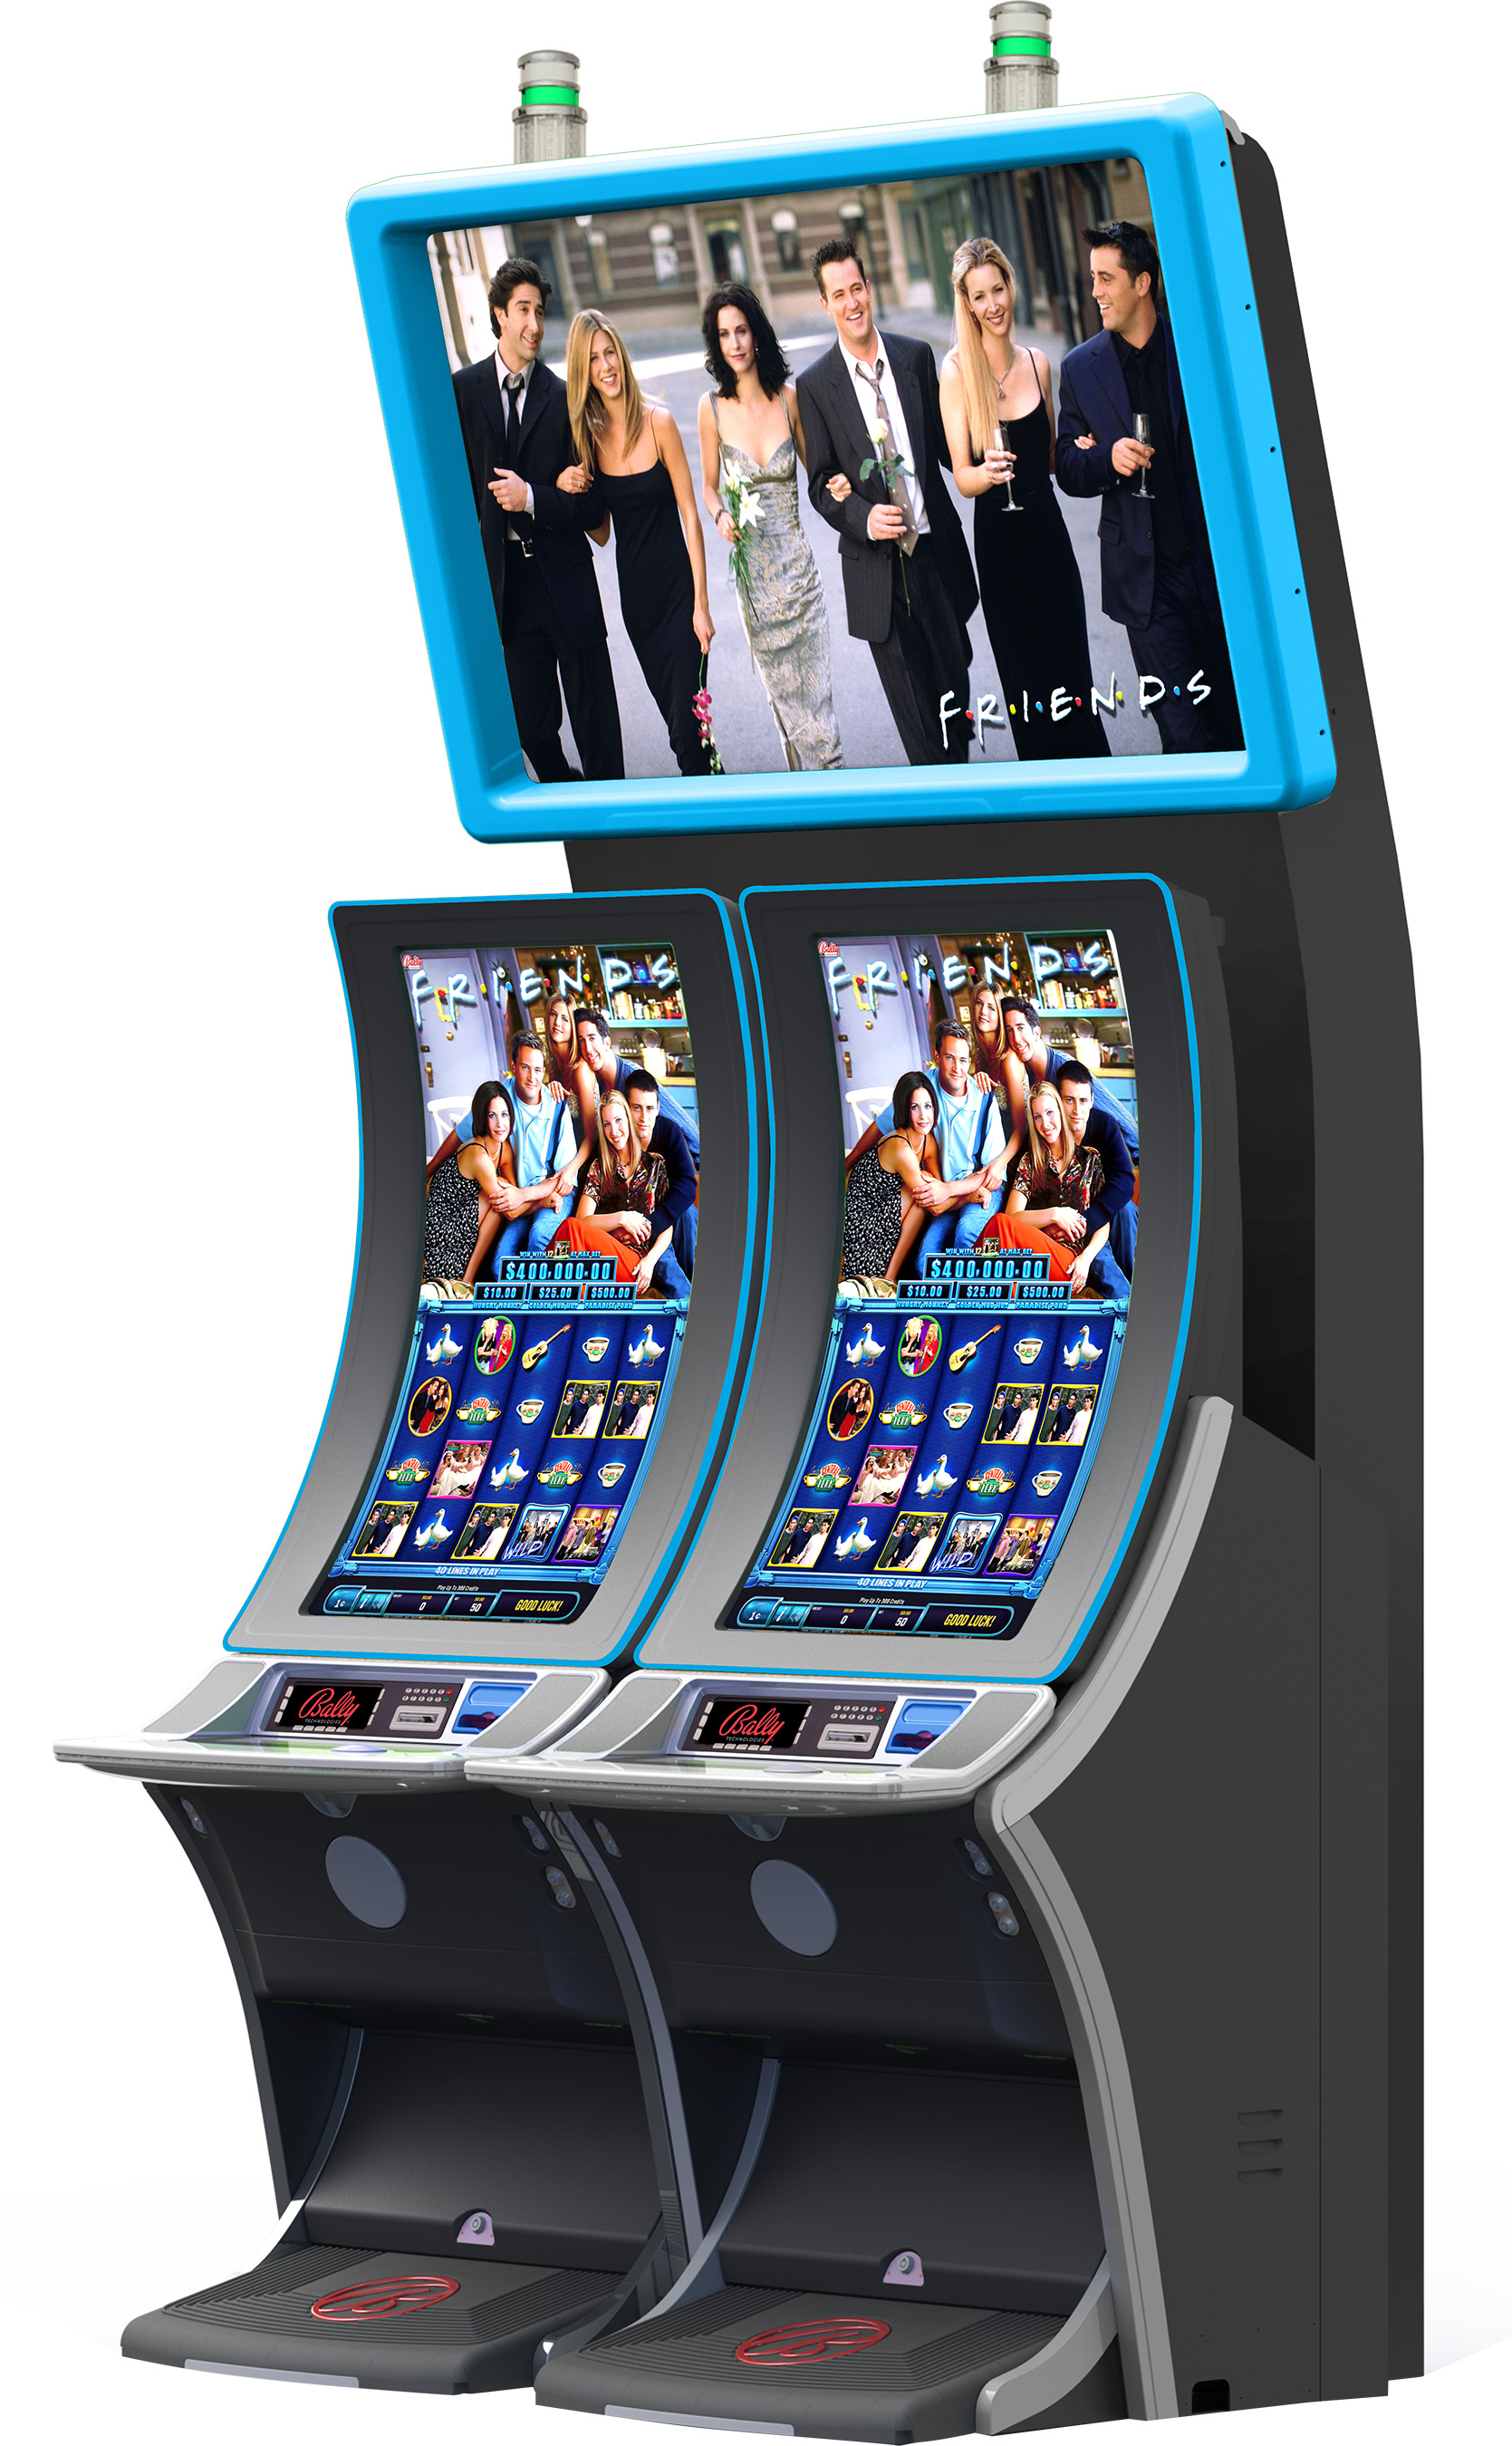 The FRIENDS™ video slot from Bally reunites players with the beloved characters from the worldwide hit comedy that TV Guide Magazine named one of the 50 greatest shows of all time.